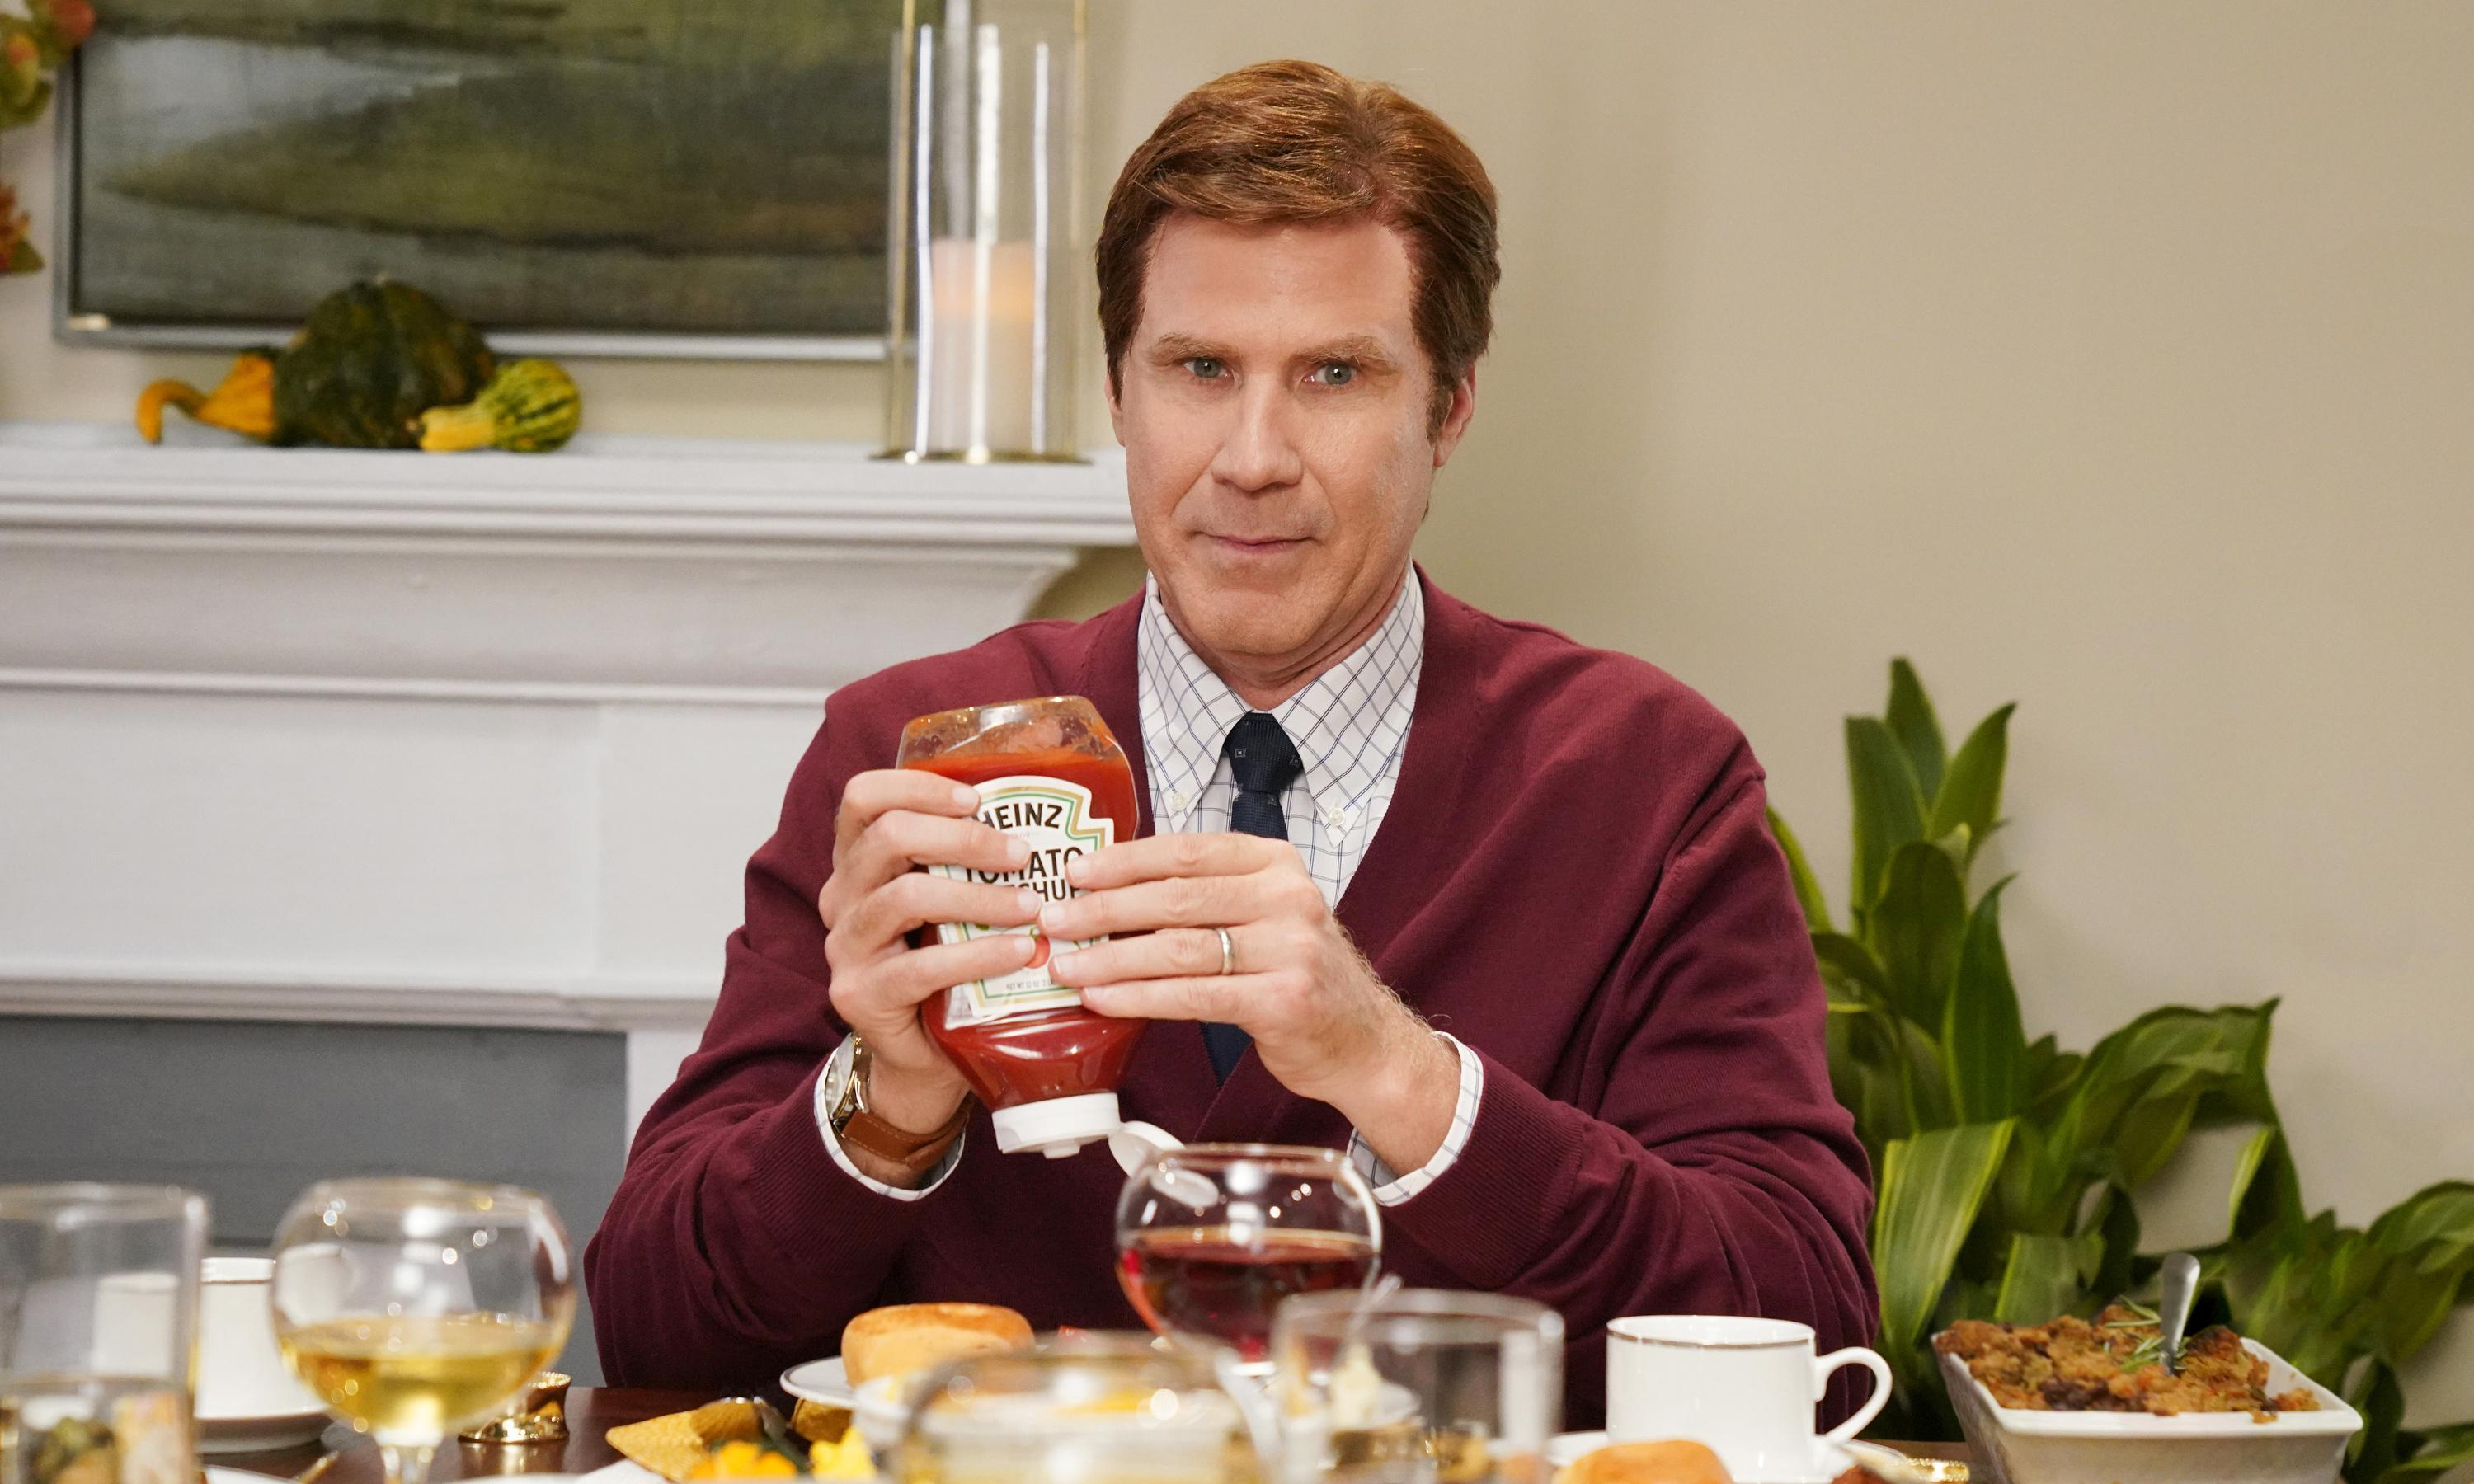 Saturday Night Live: Will Ferrell warms up after coldest cold open